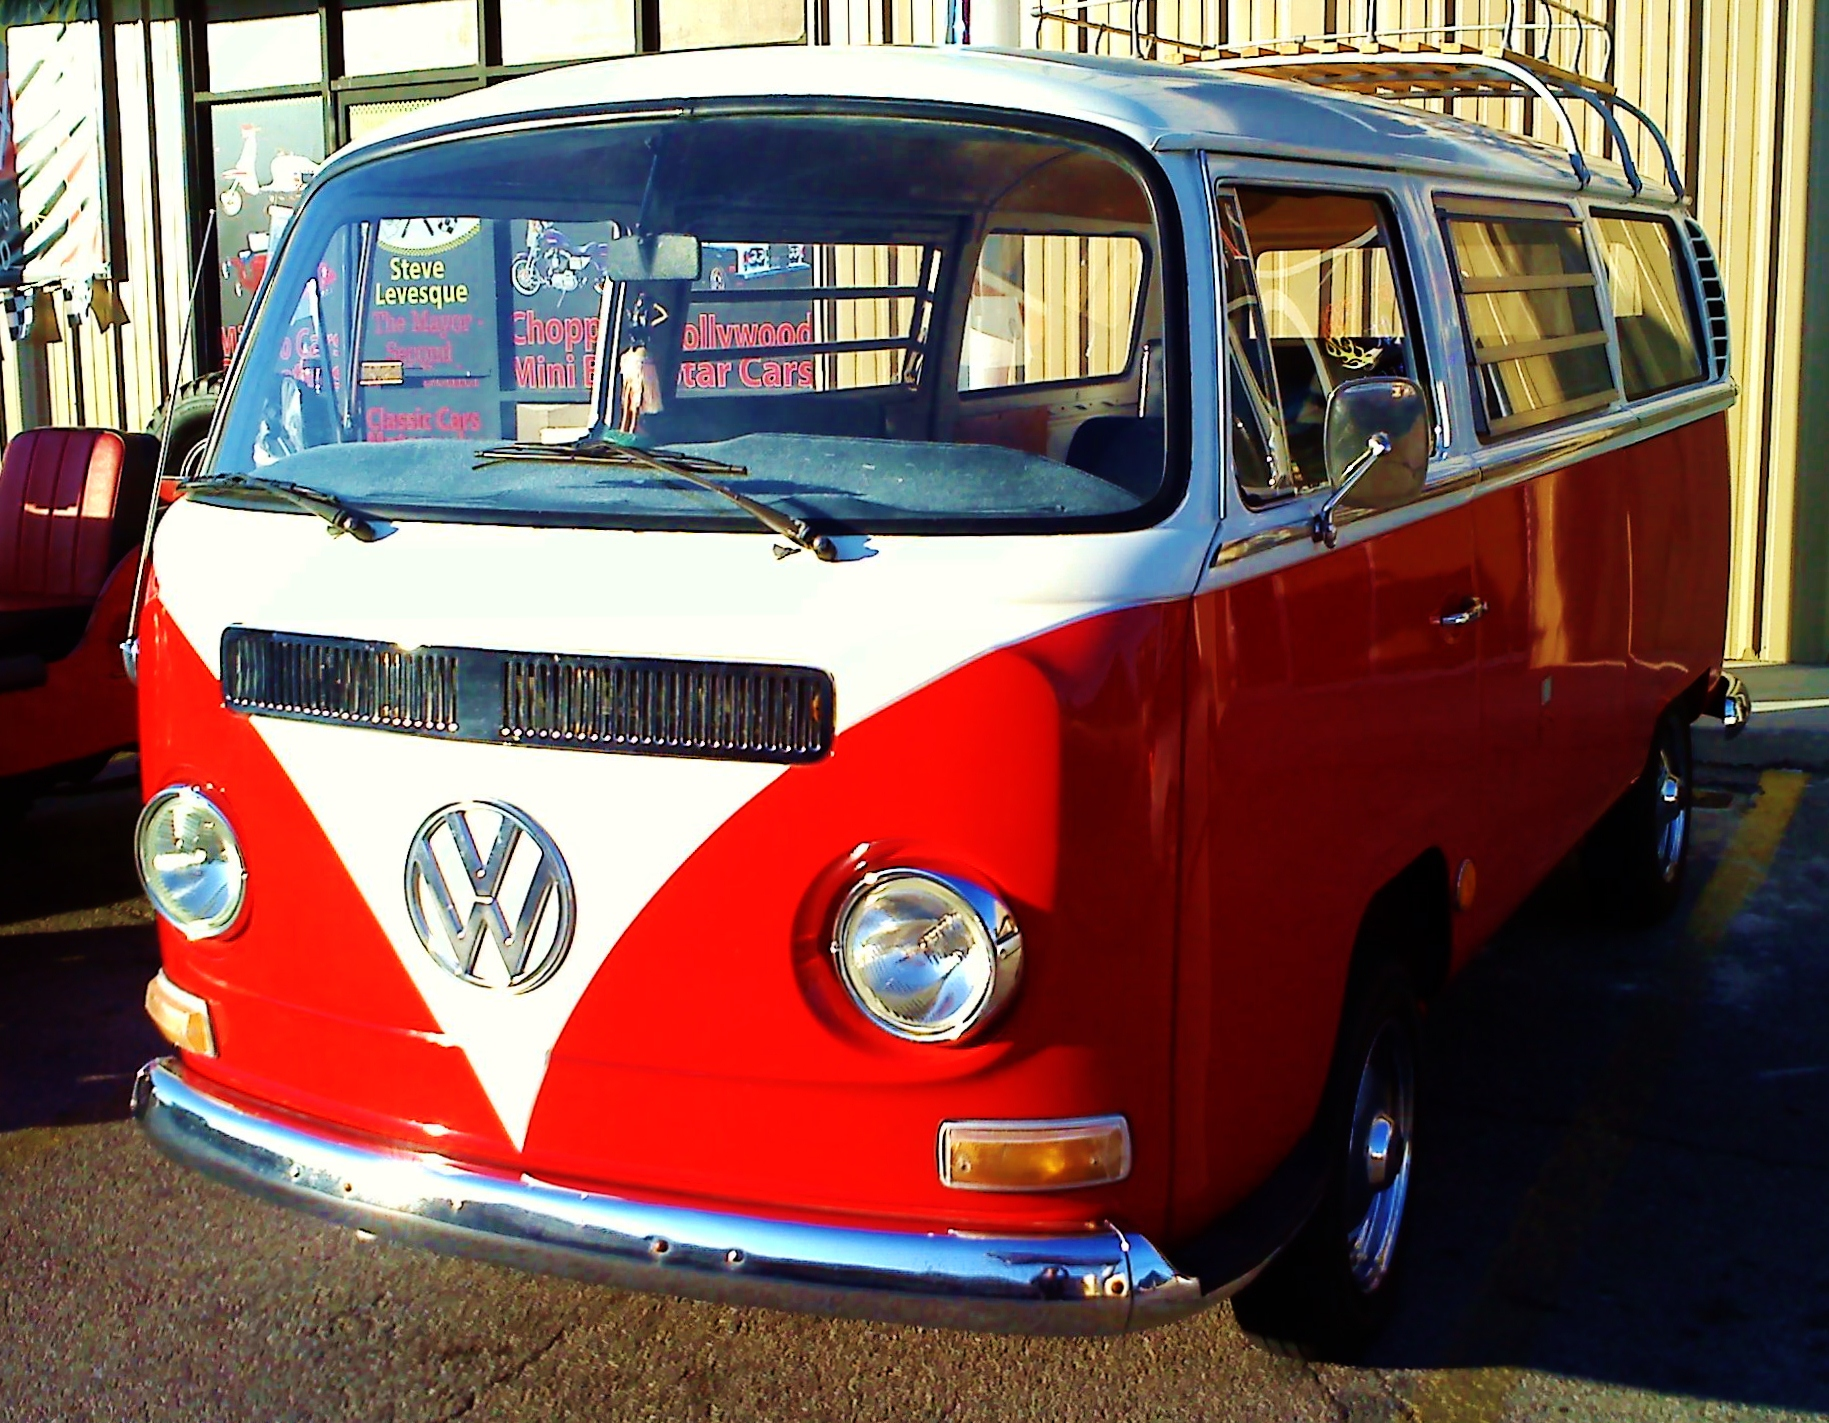 Lifts For Sale >> 1968 Volkswagen Bus - Hot Rod City - Hot Rod City